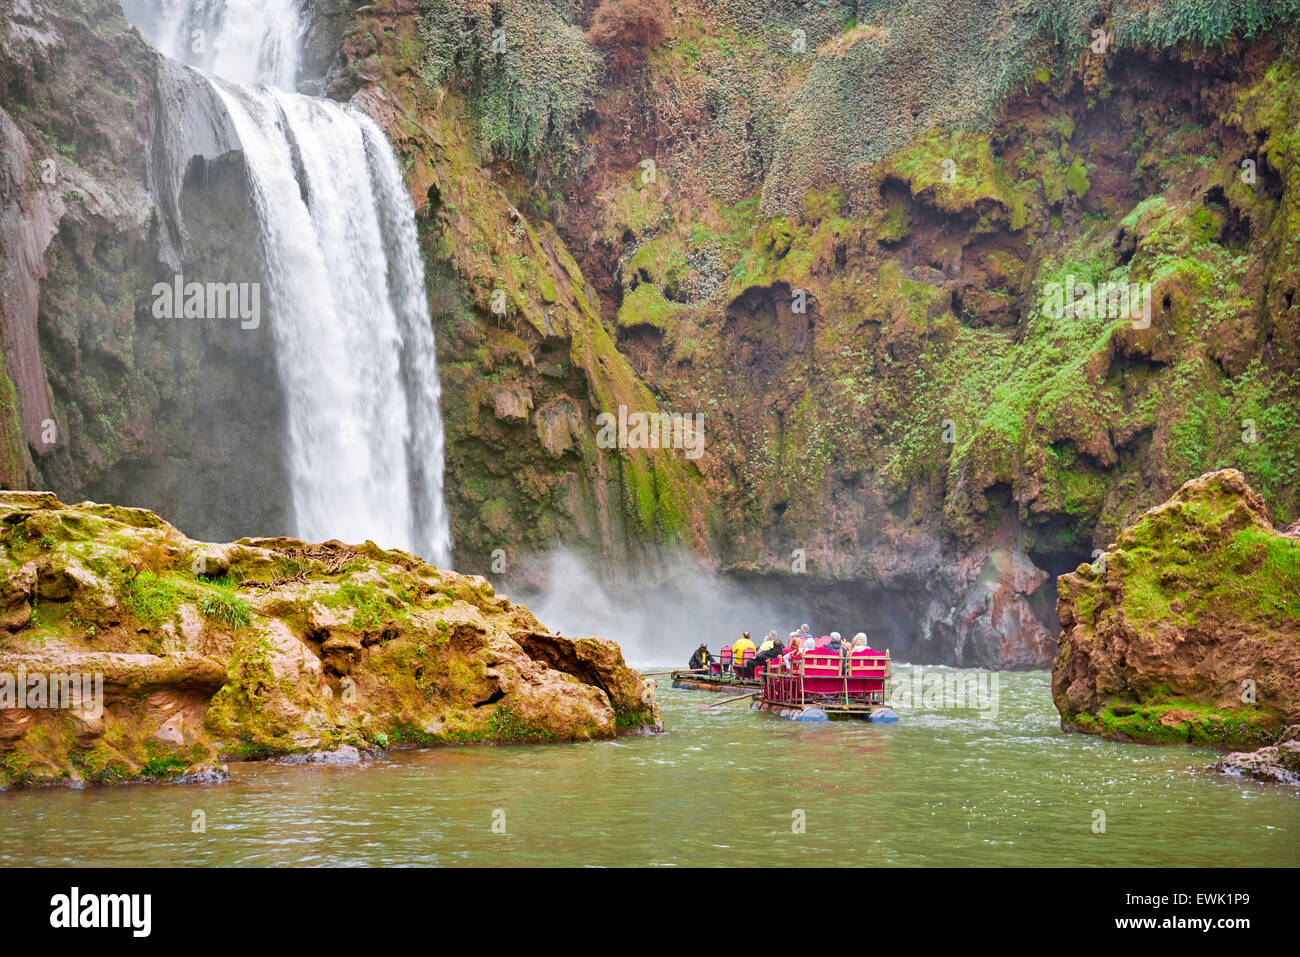 Ouzoud Waterfalls, Beni Mellal, Morocco, Africa Stock Photo